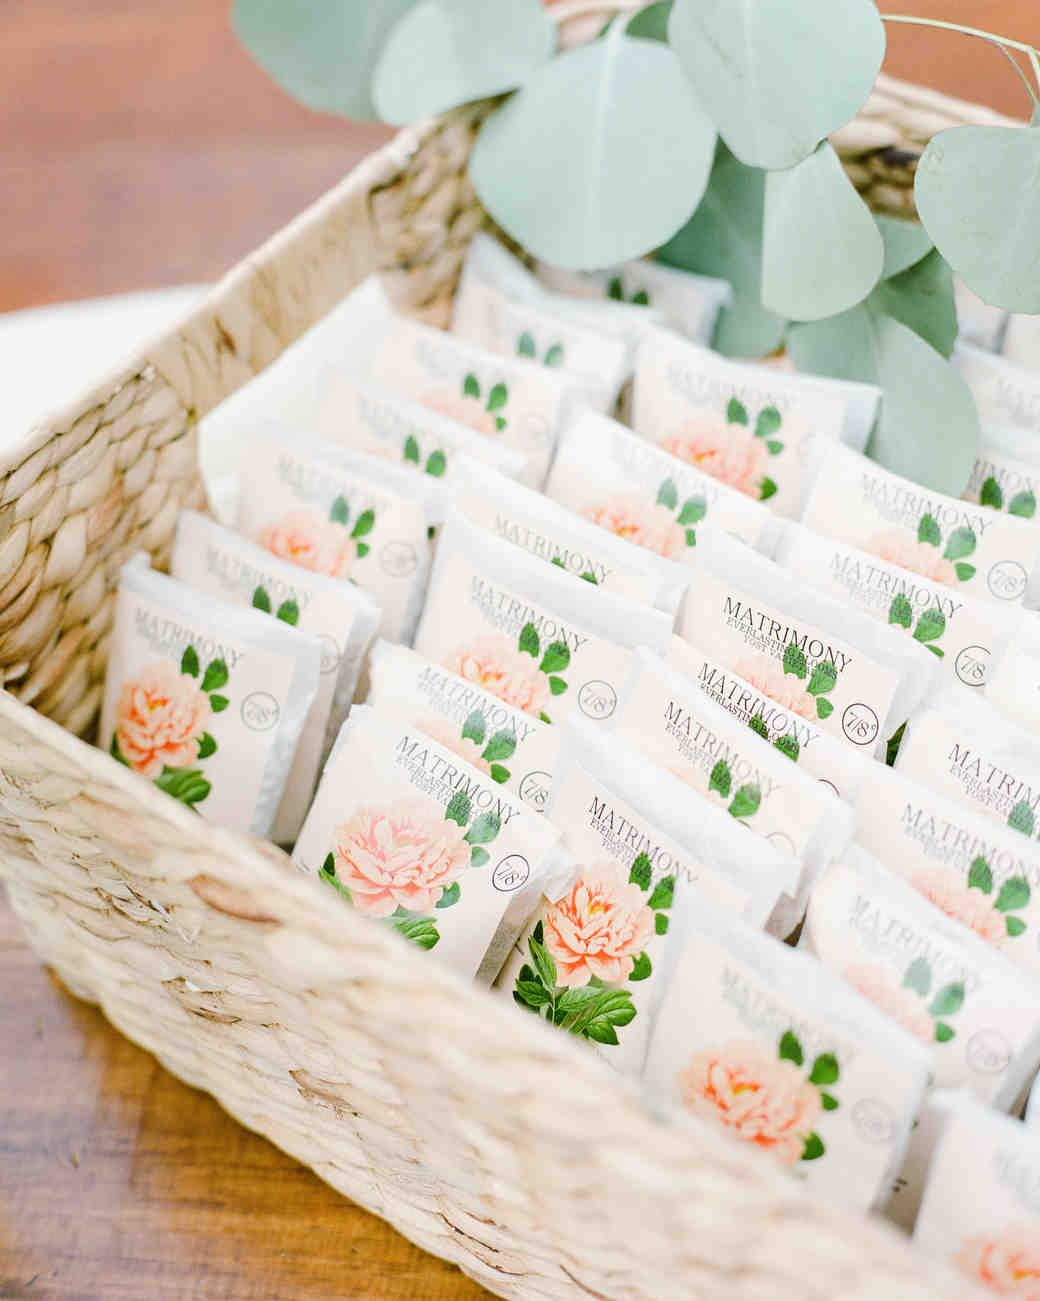 45 Spring Wedding Ideas from Real Celebrations | Martha stewart ...